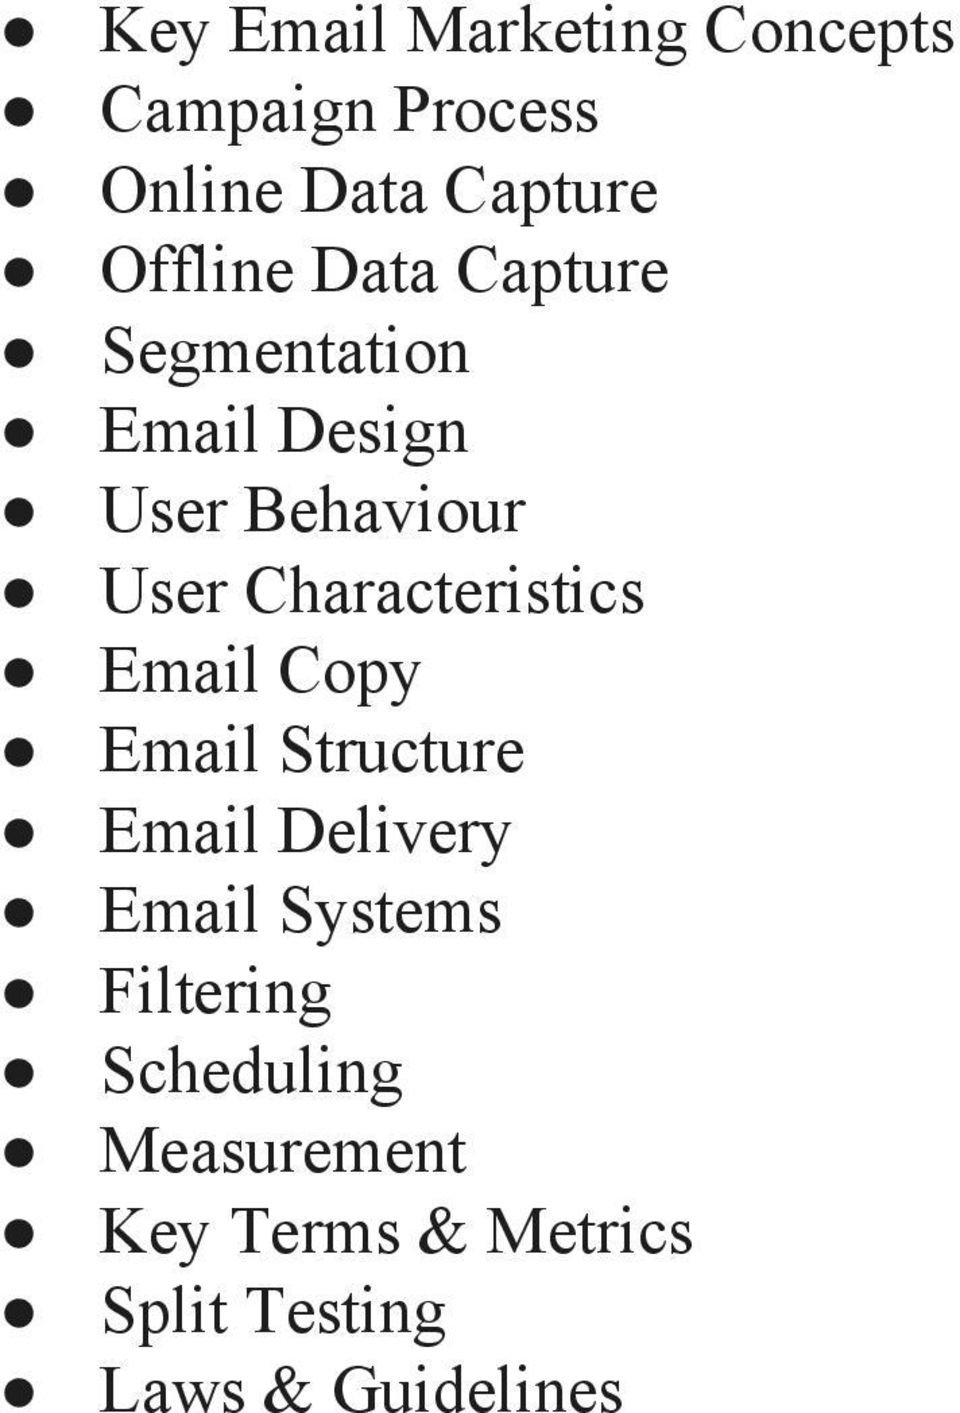 Characteristics Email Copy Email Structure Email Delivery Email Systems